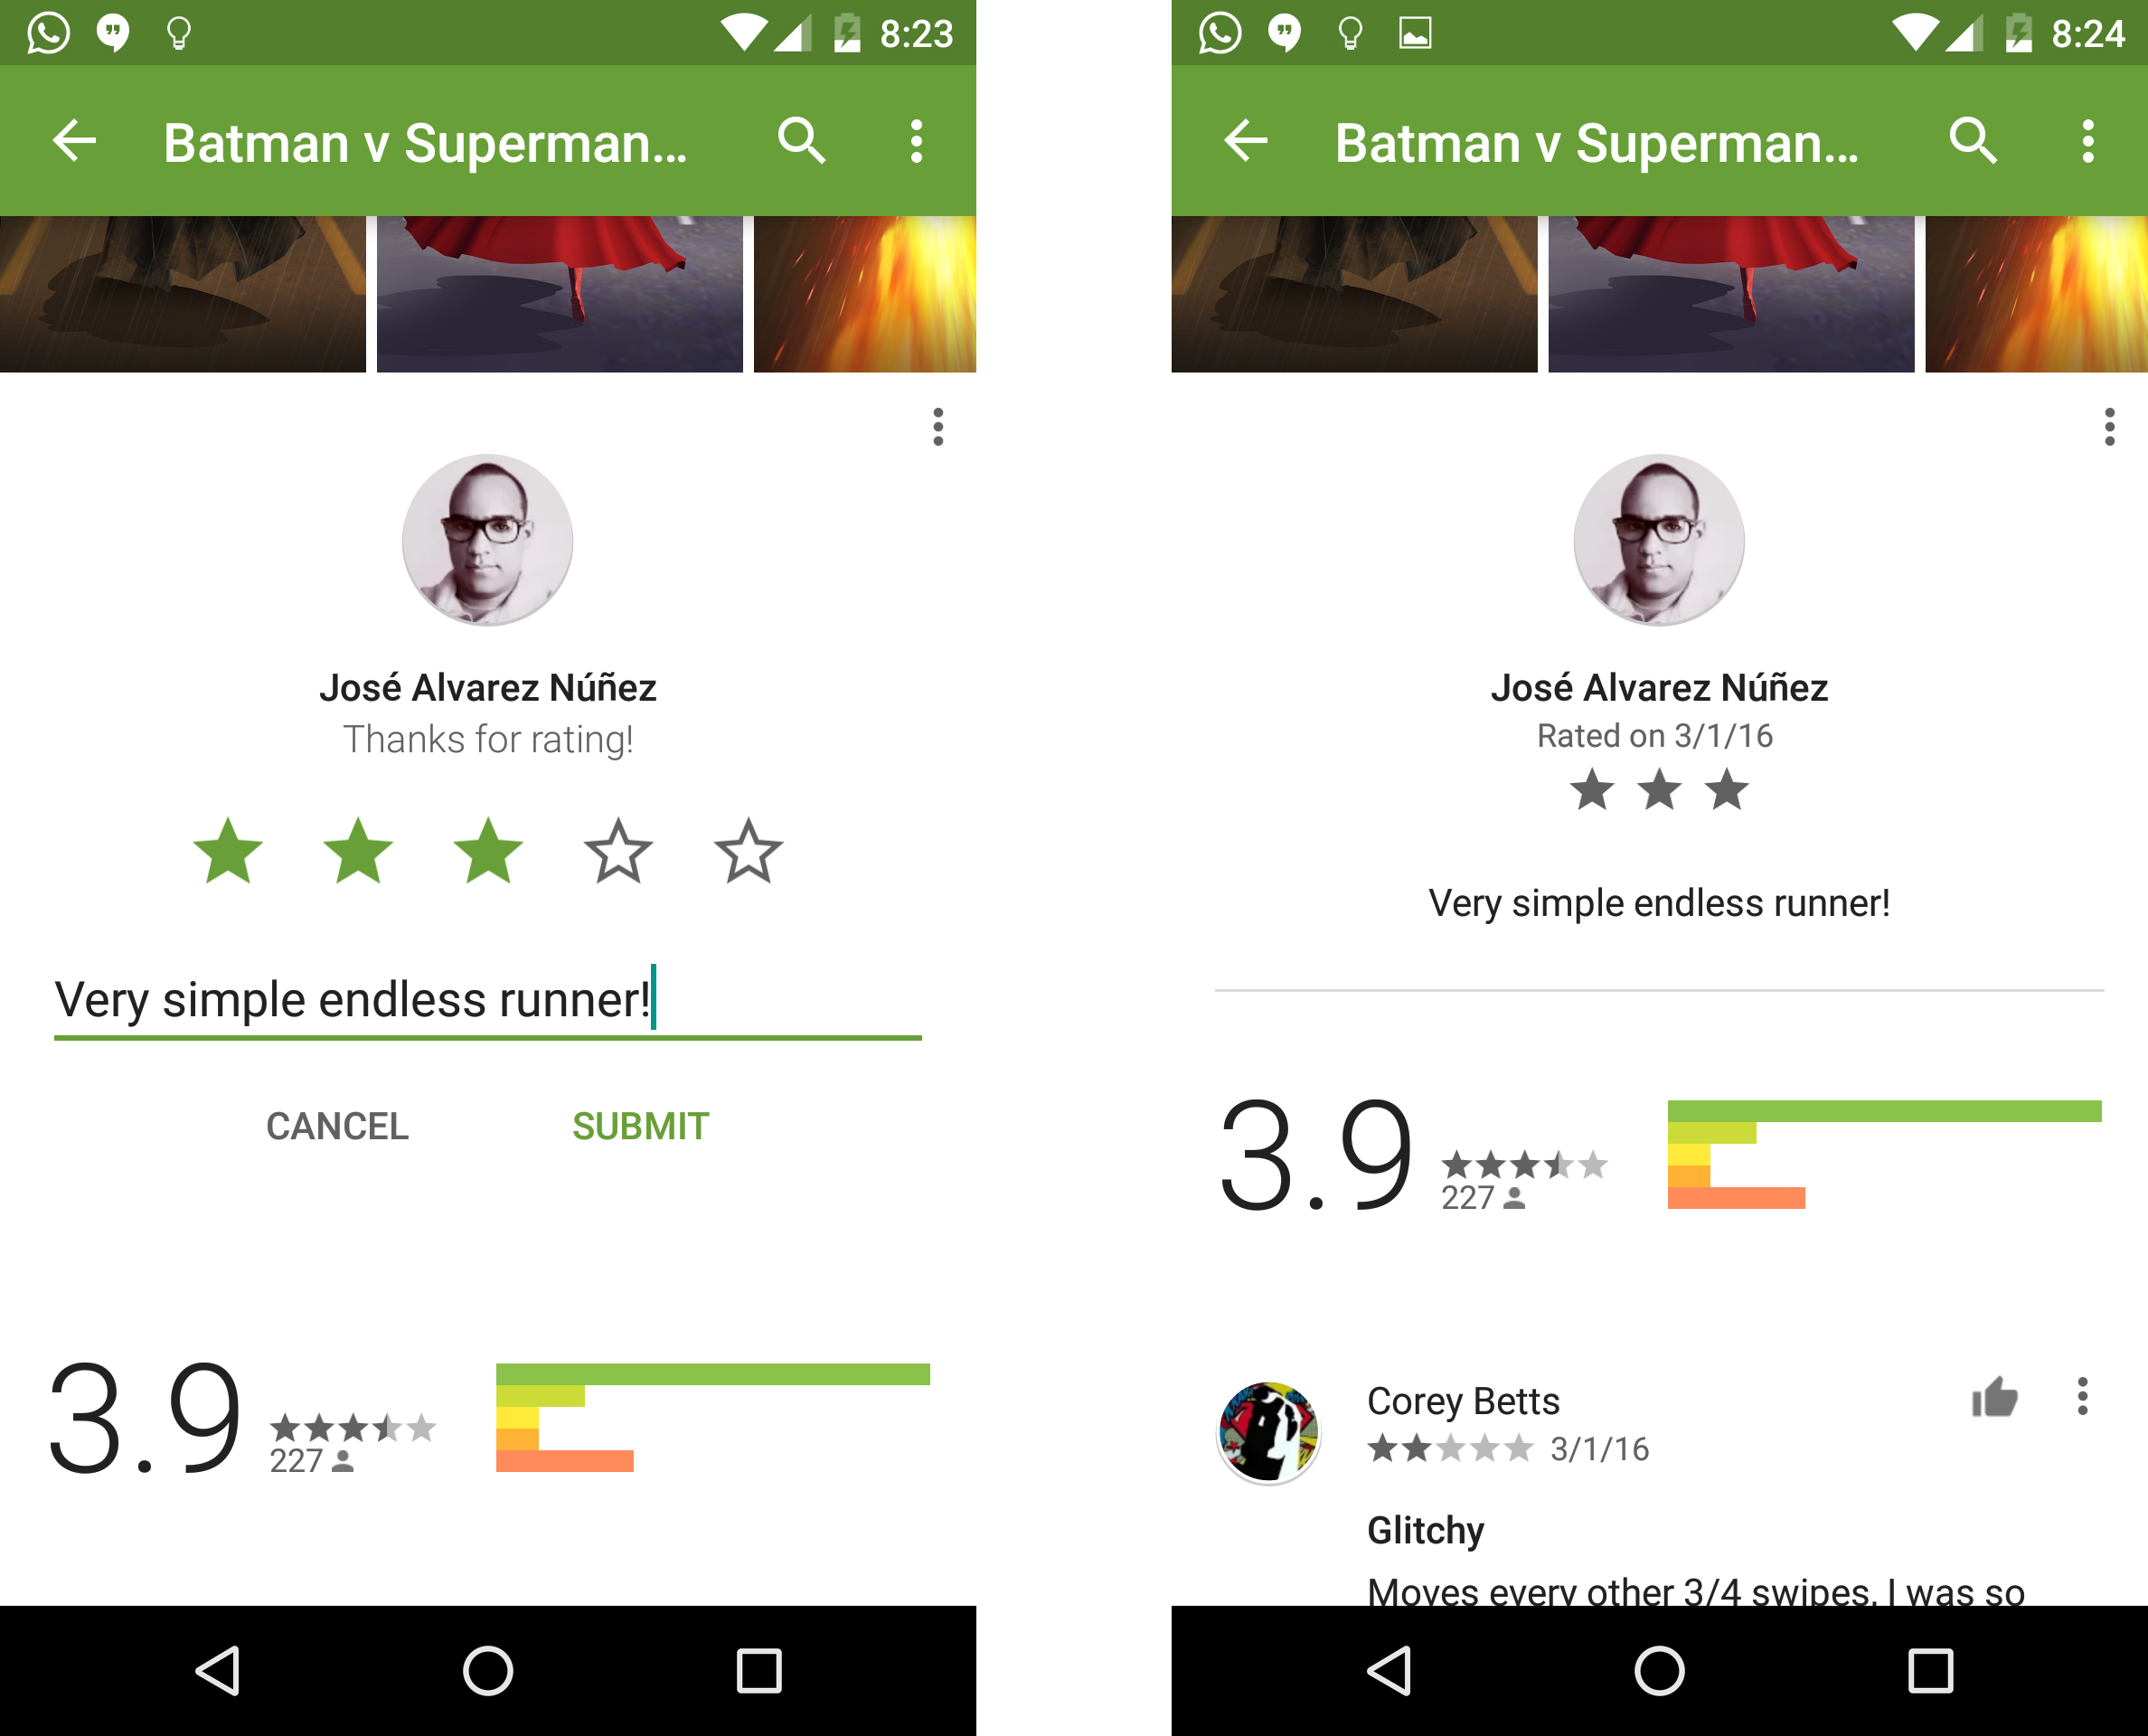 google appears to be testing a new simpler layout for ratings in